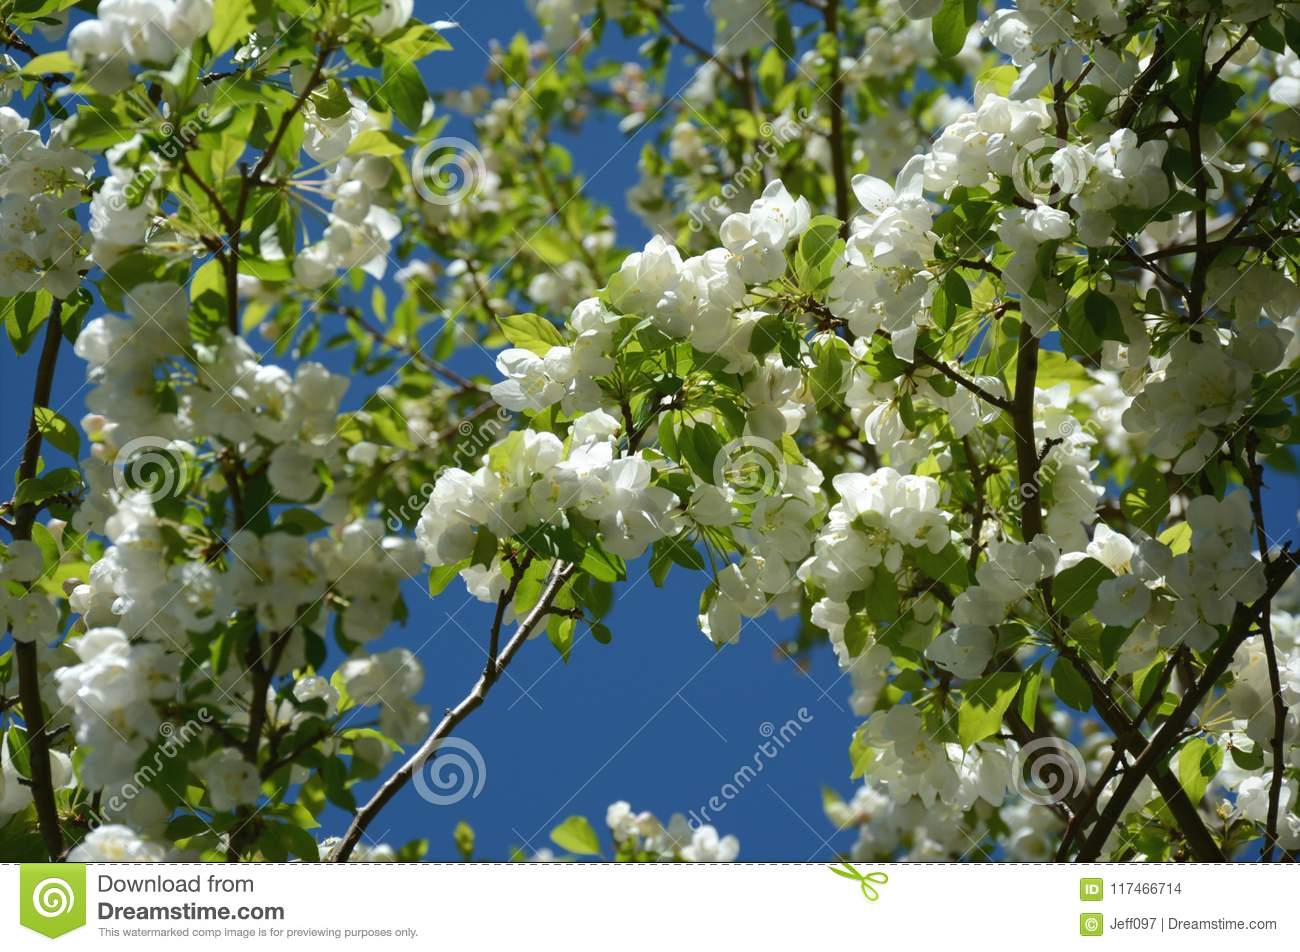 White Flowering Crabapple Blossoms Stock Photo Image Of Blossoms